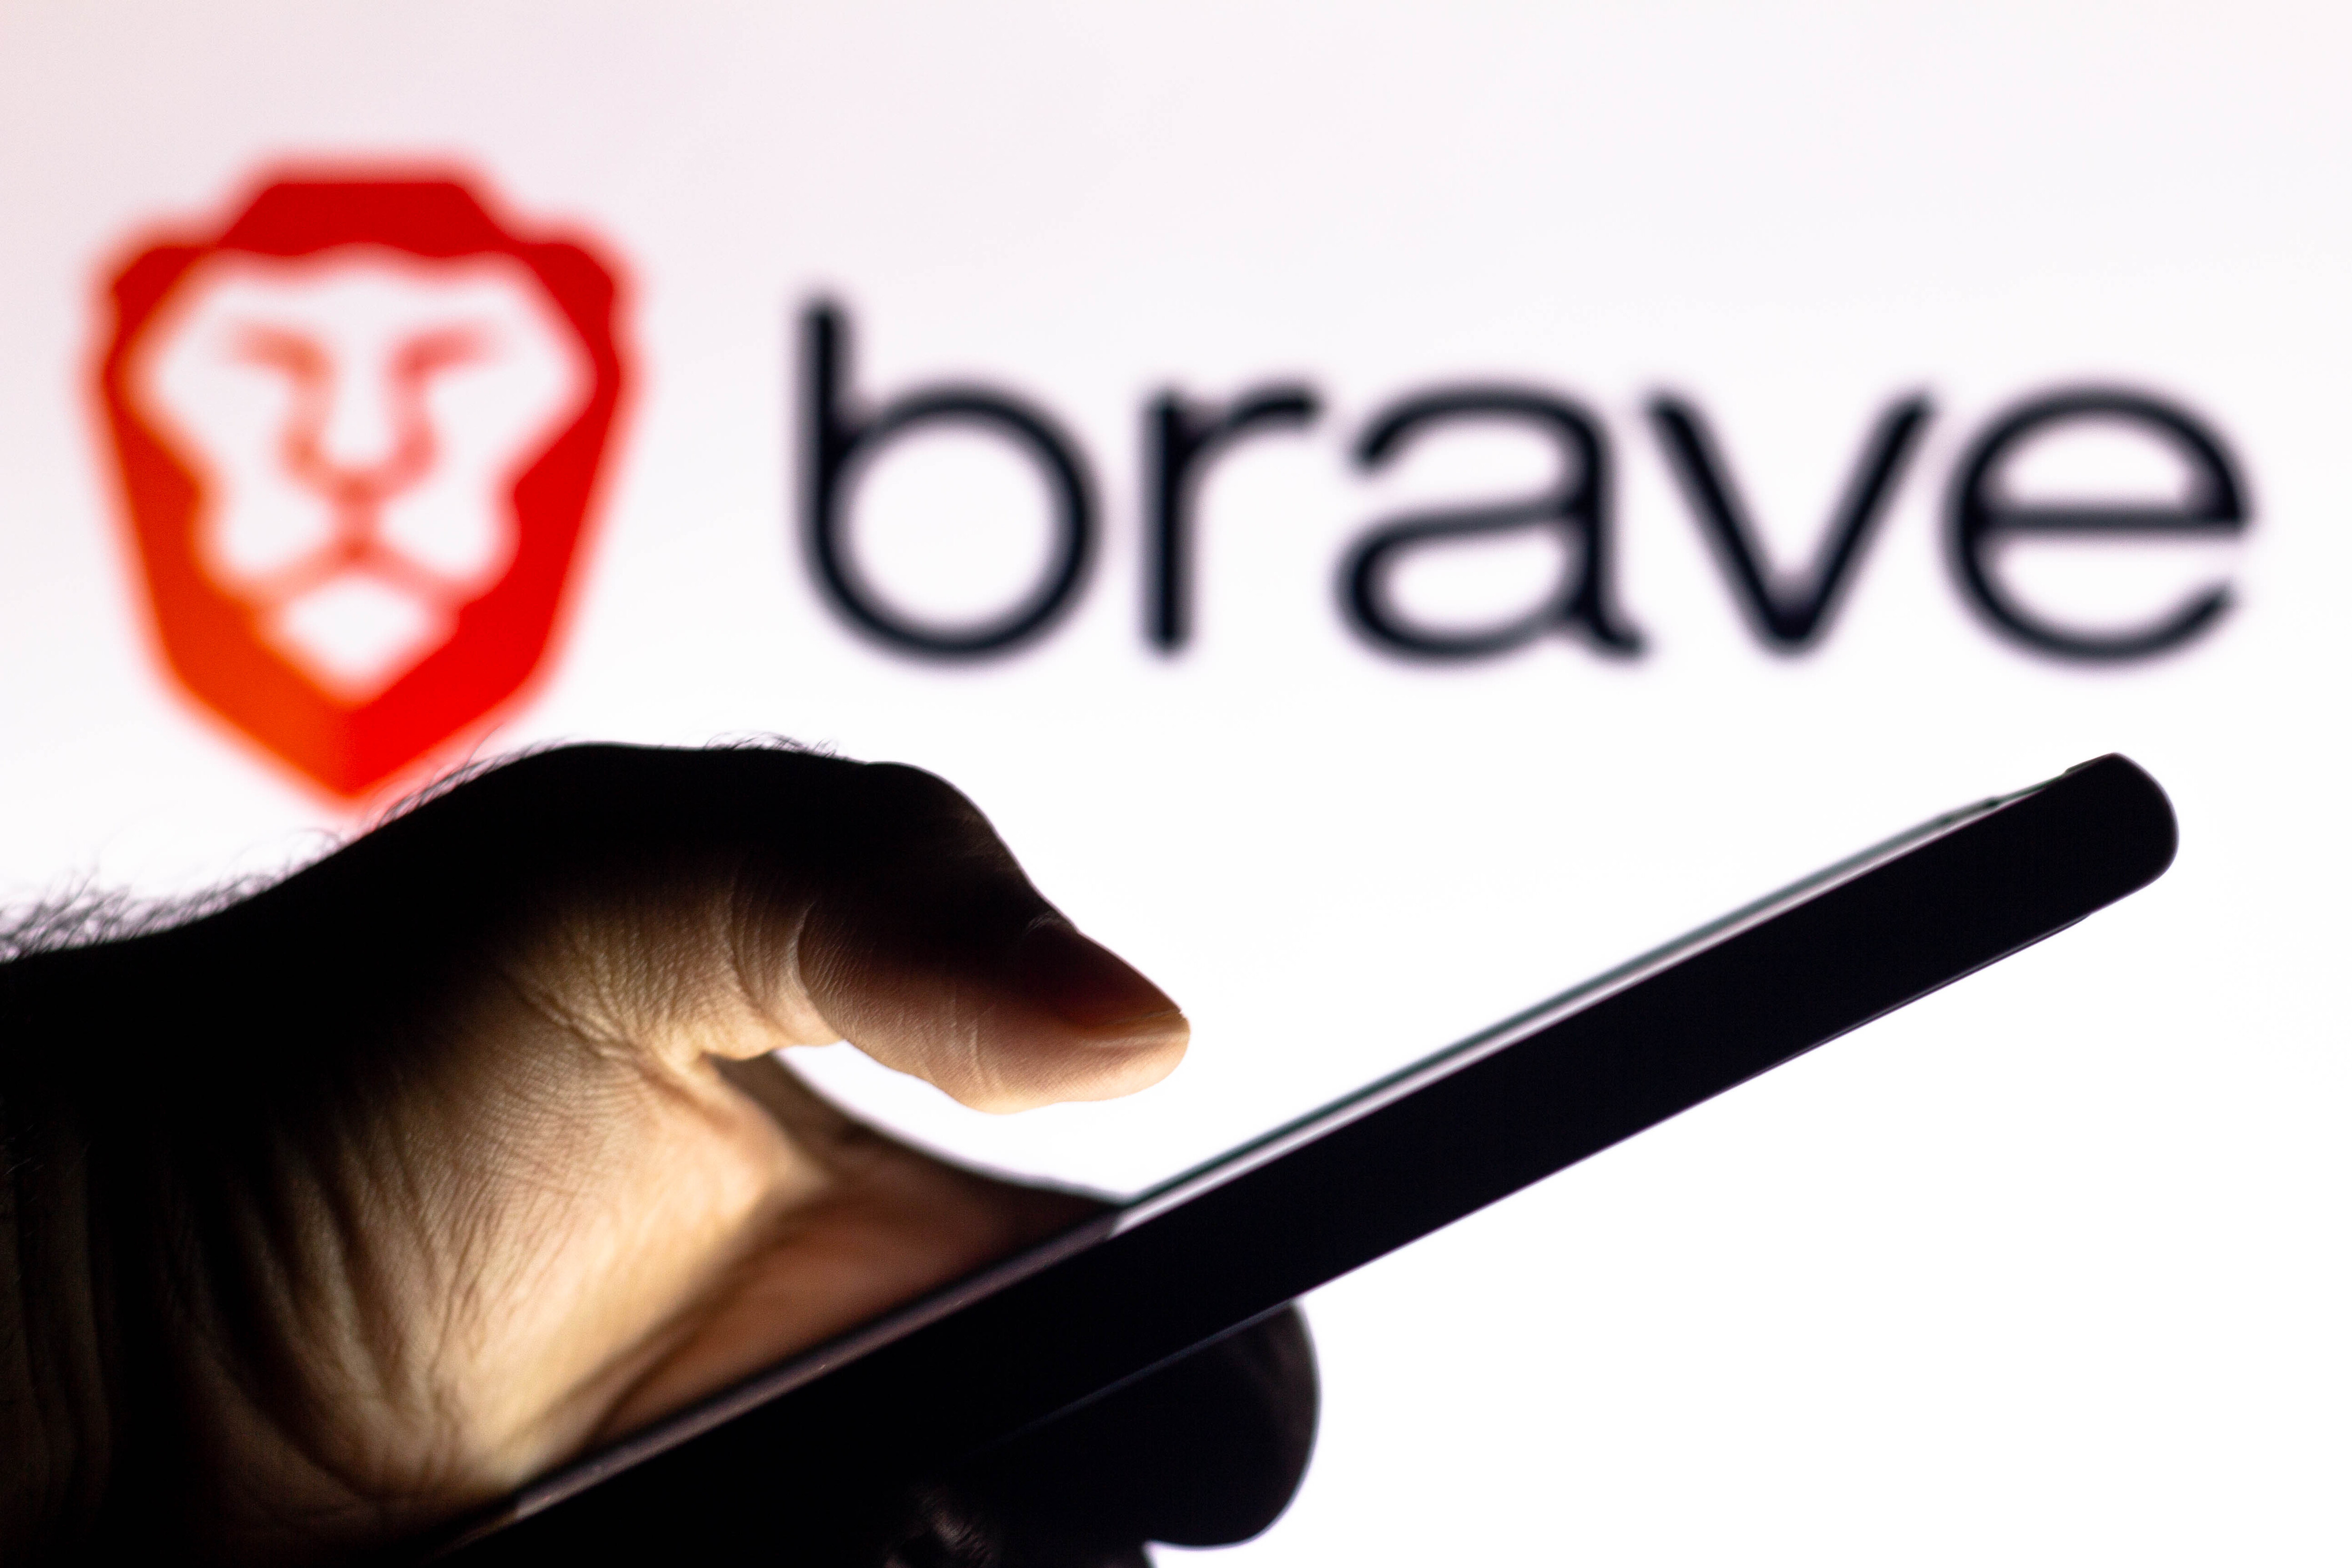 Brave is developing its own privacy-focused search engine